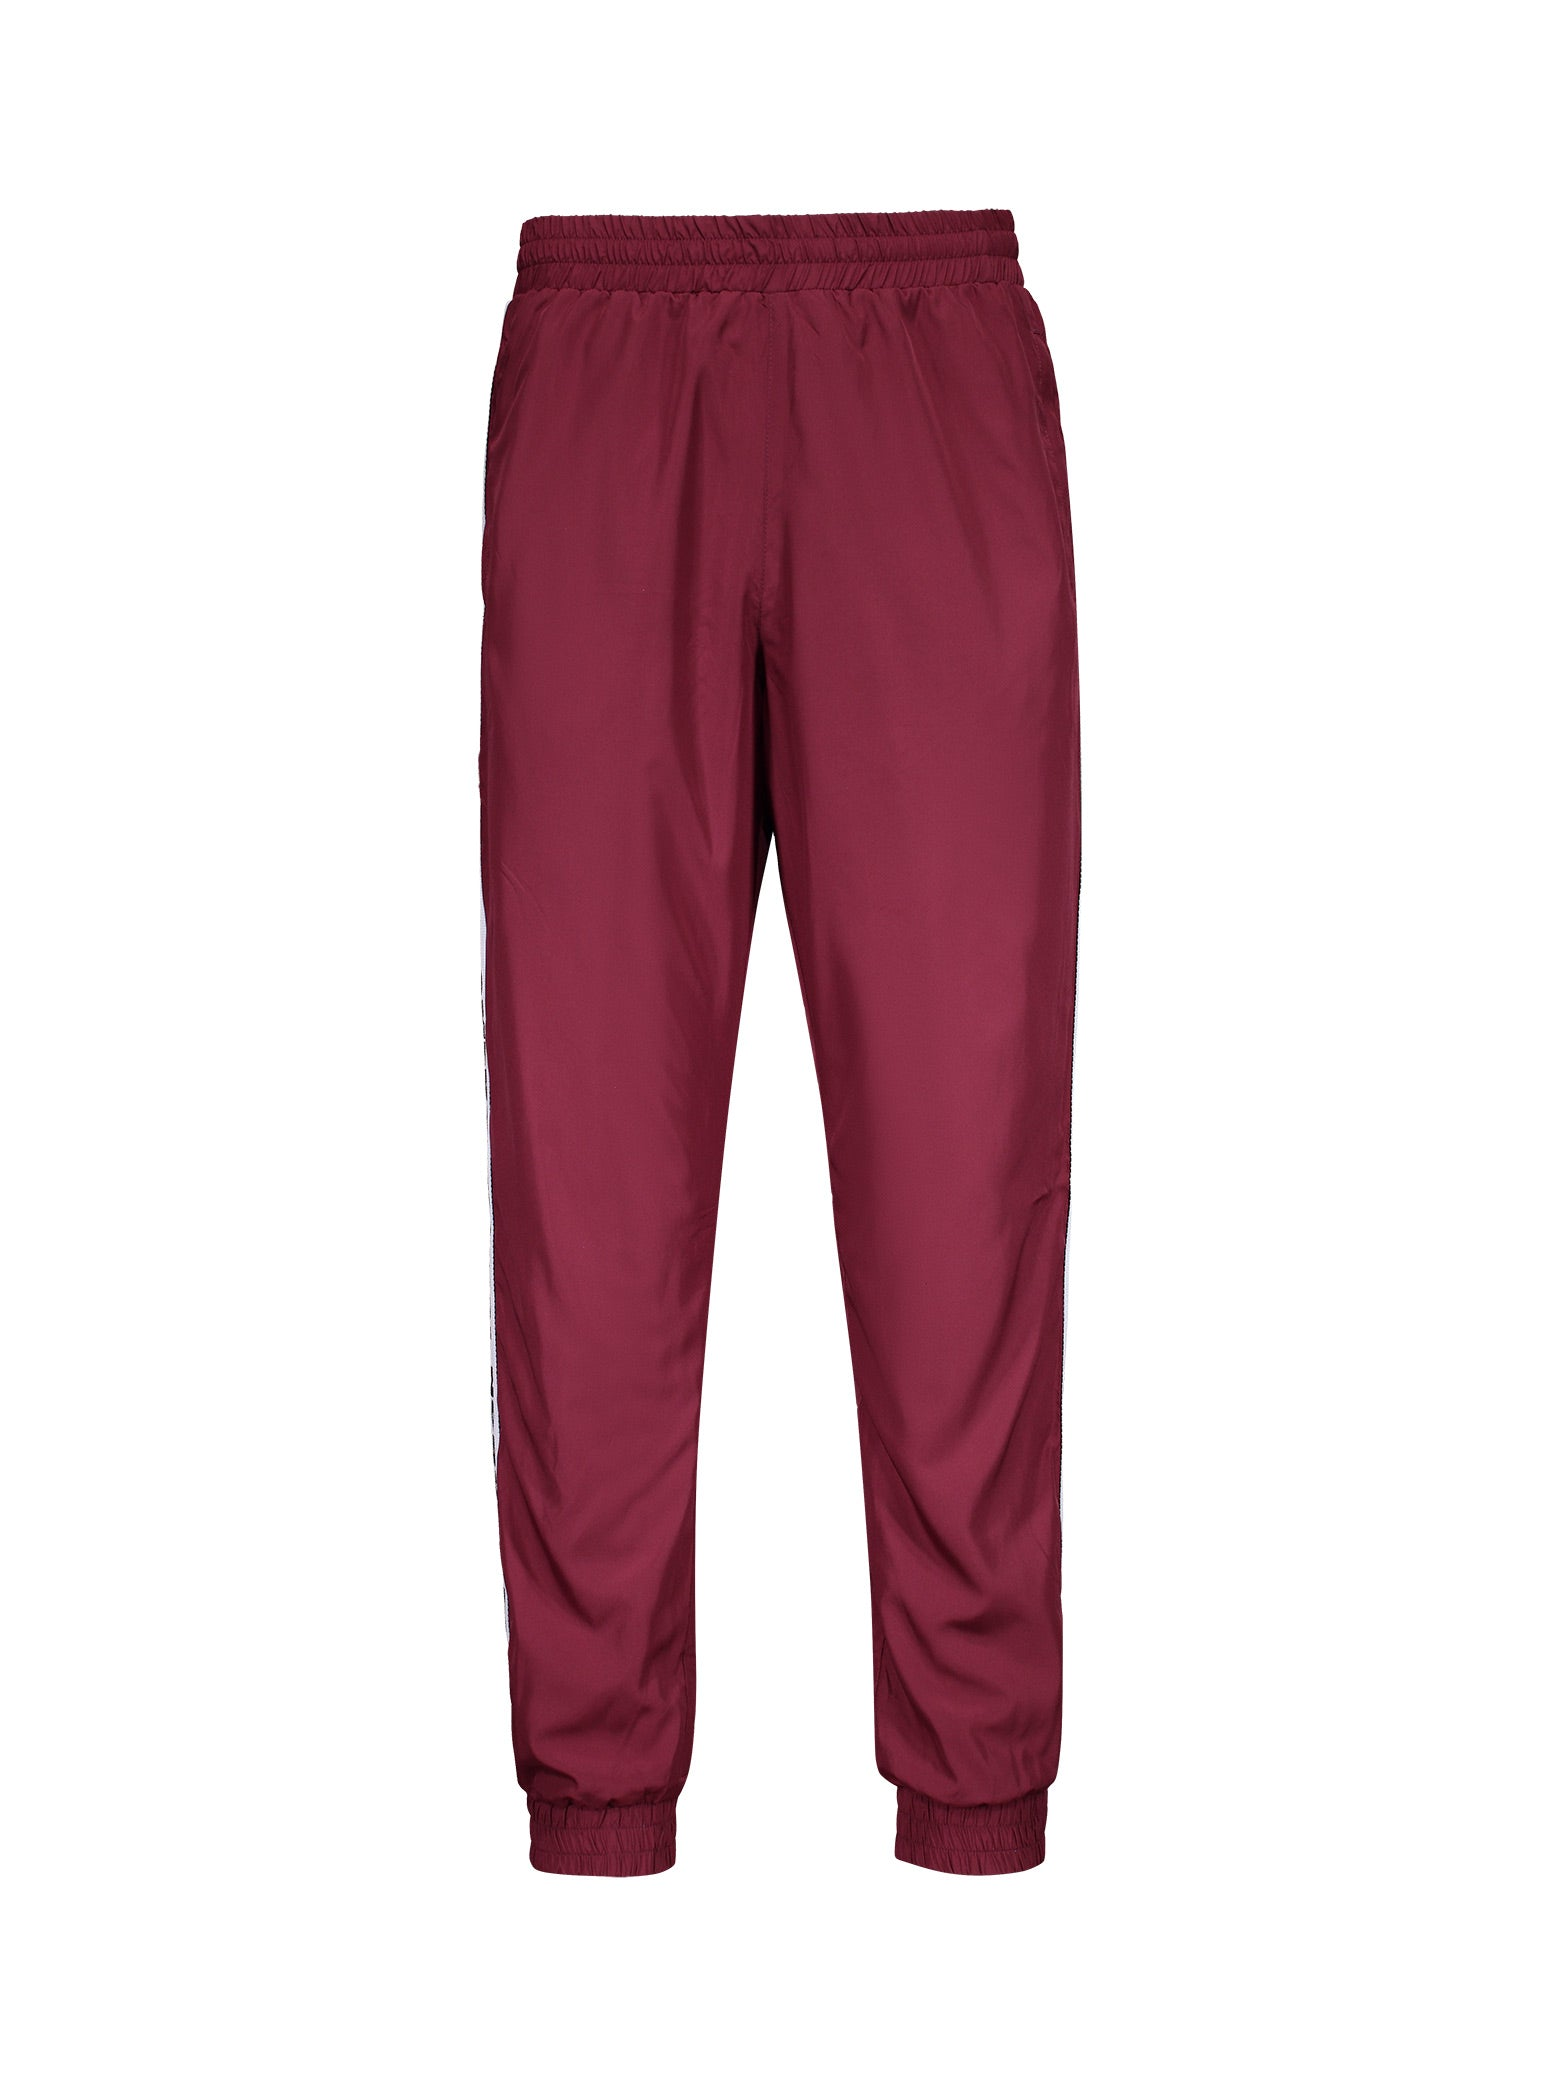 Robby jogging trousers Wood Wood Natural And Freely Recommend Cheap nCpownqF